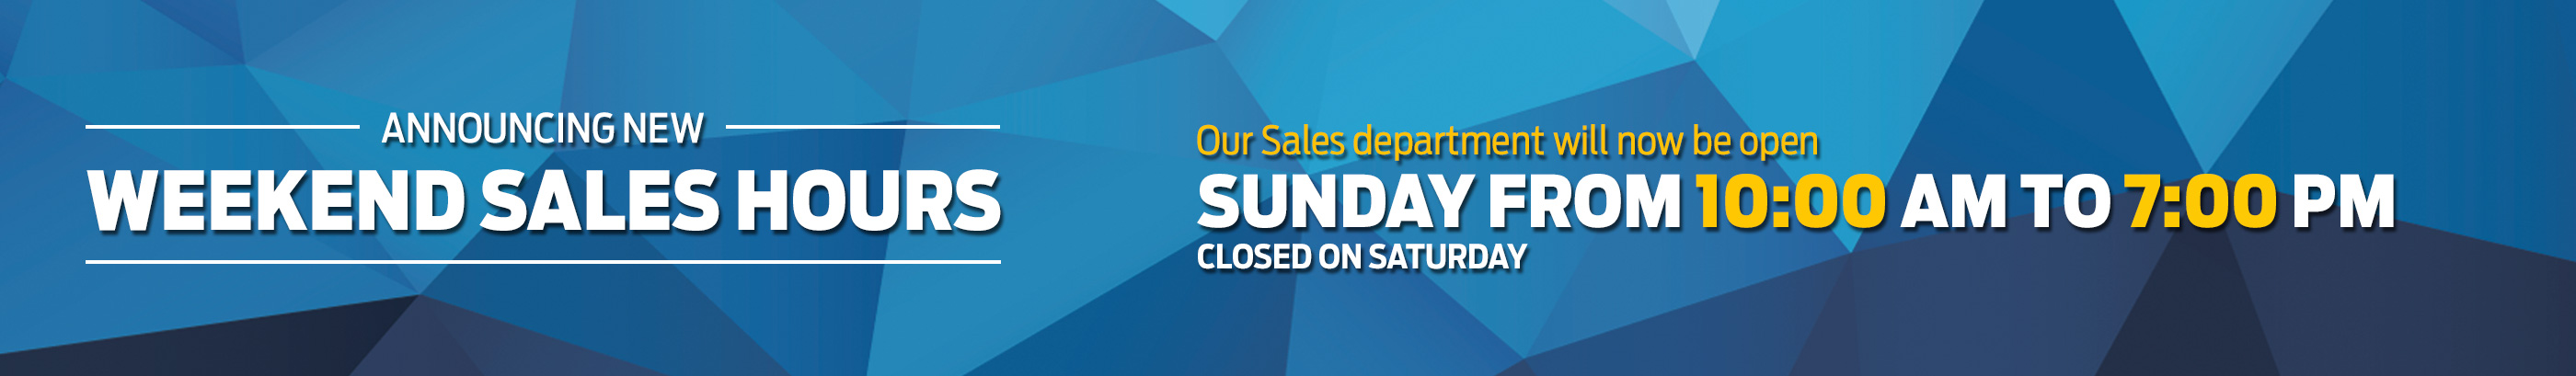 Weekend Sales Hours